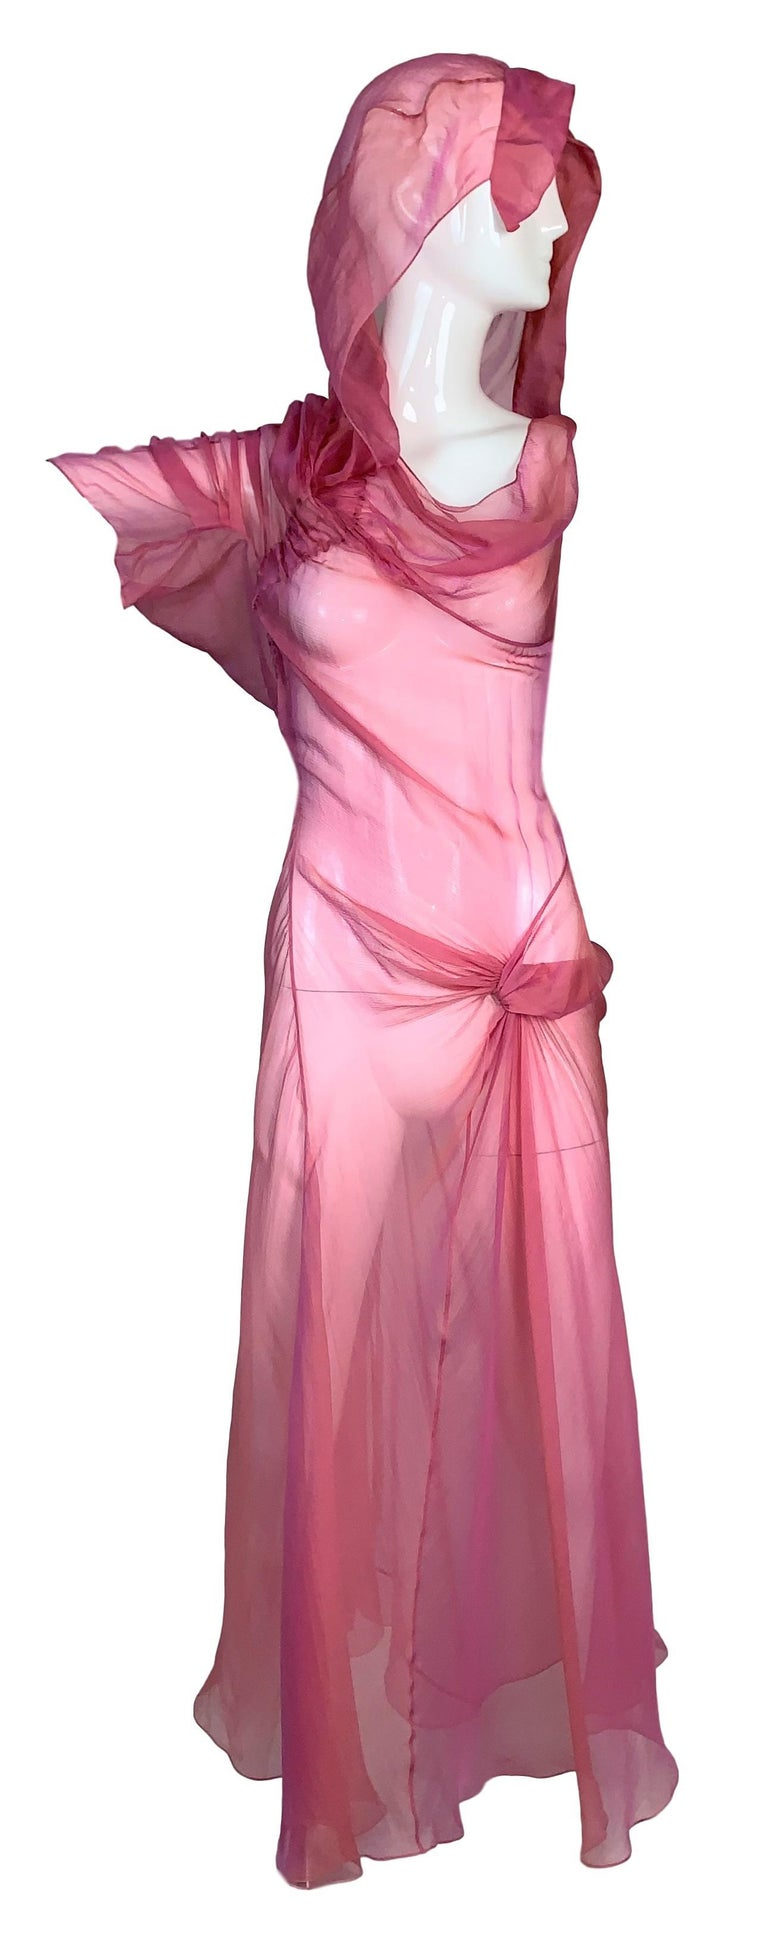 DESIGNER: S/S 2002 Christian Dior by John Galliano Runway  Please contact for more information and/or photos.  CONDITION: Good- light wear but no flaws- label is on the slip dress that can be worn underneath or separate  MATERIAL: 100% silk  COUNTRY